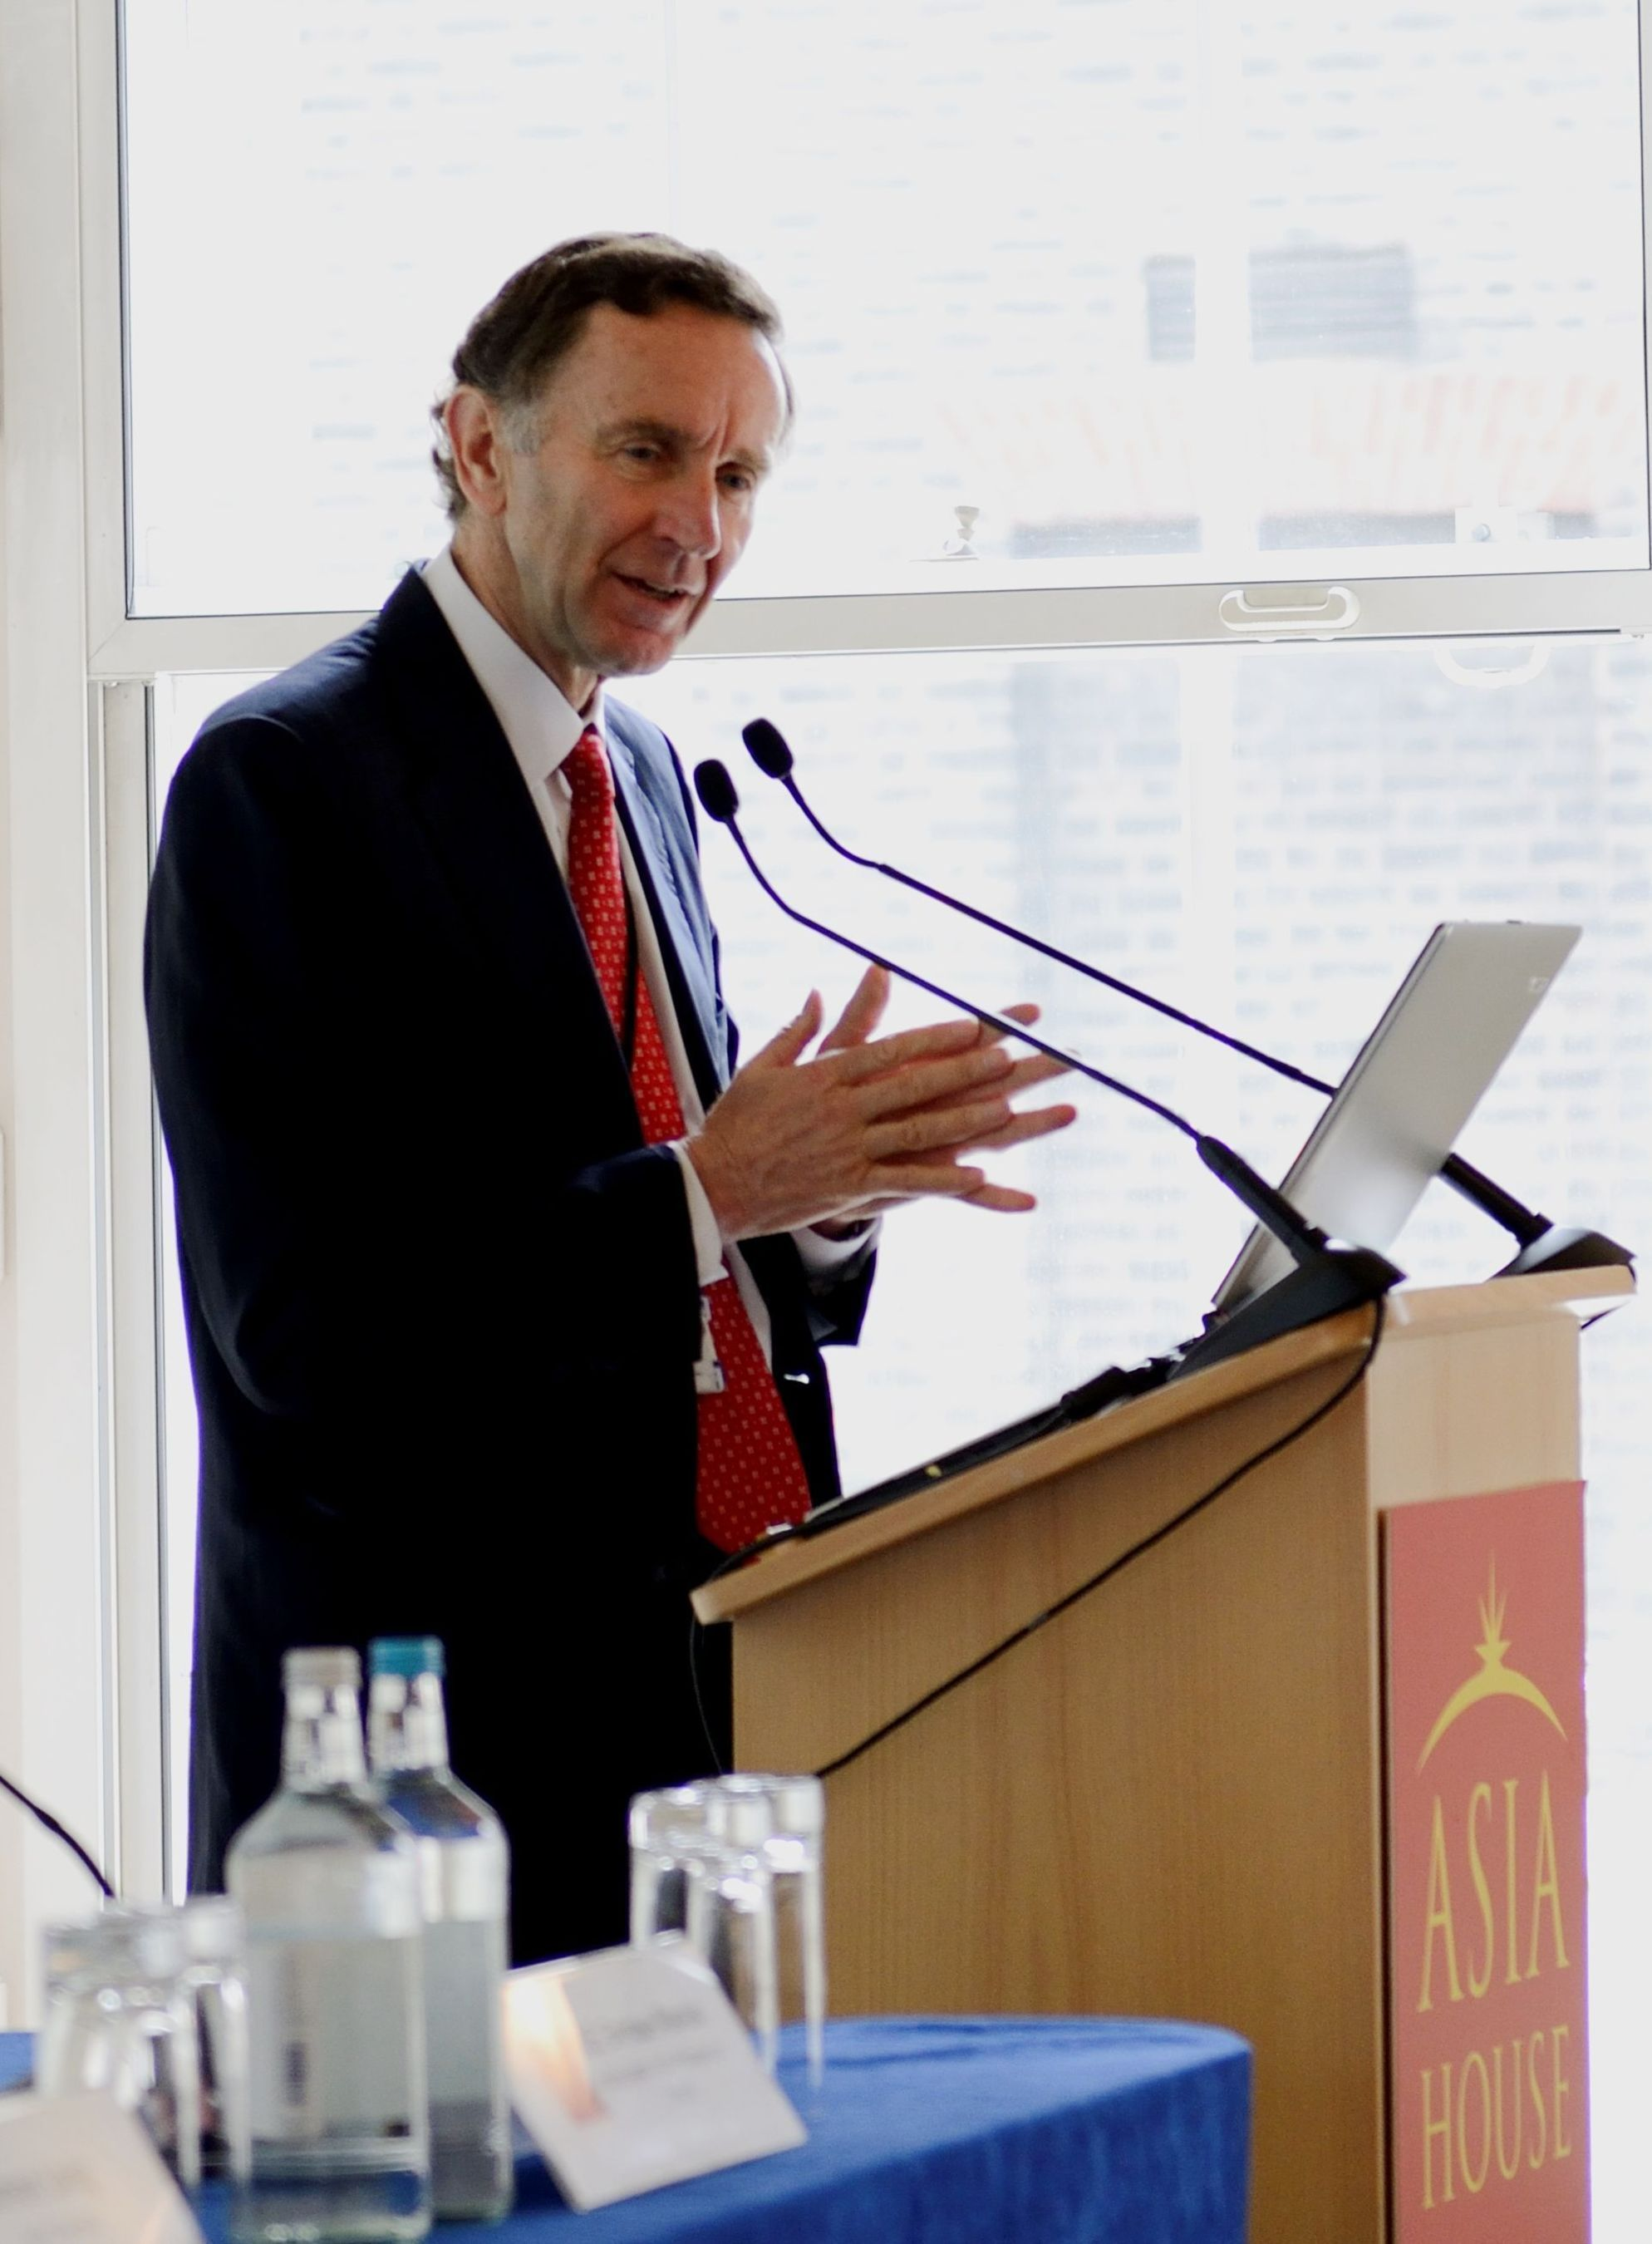 Lord Green of Hurstpierpoint delivered a speech at the Asia Trade-Shaping the 21st Century conference held at Asia House when he was the UK Minister of State for Trade and Investment (PRNewsFoto/Asia House)